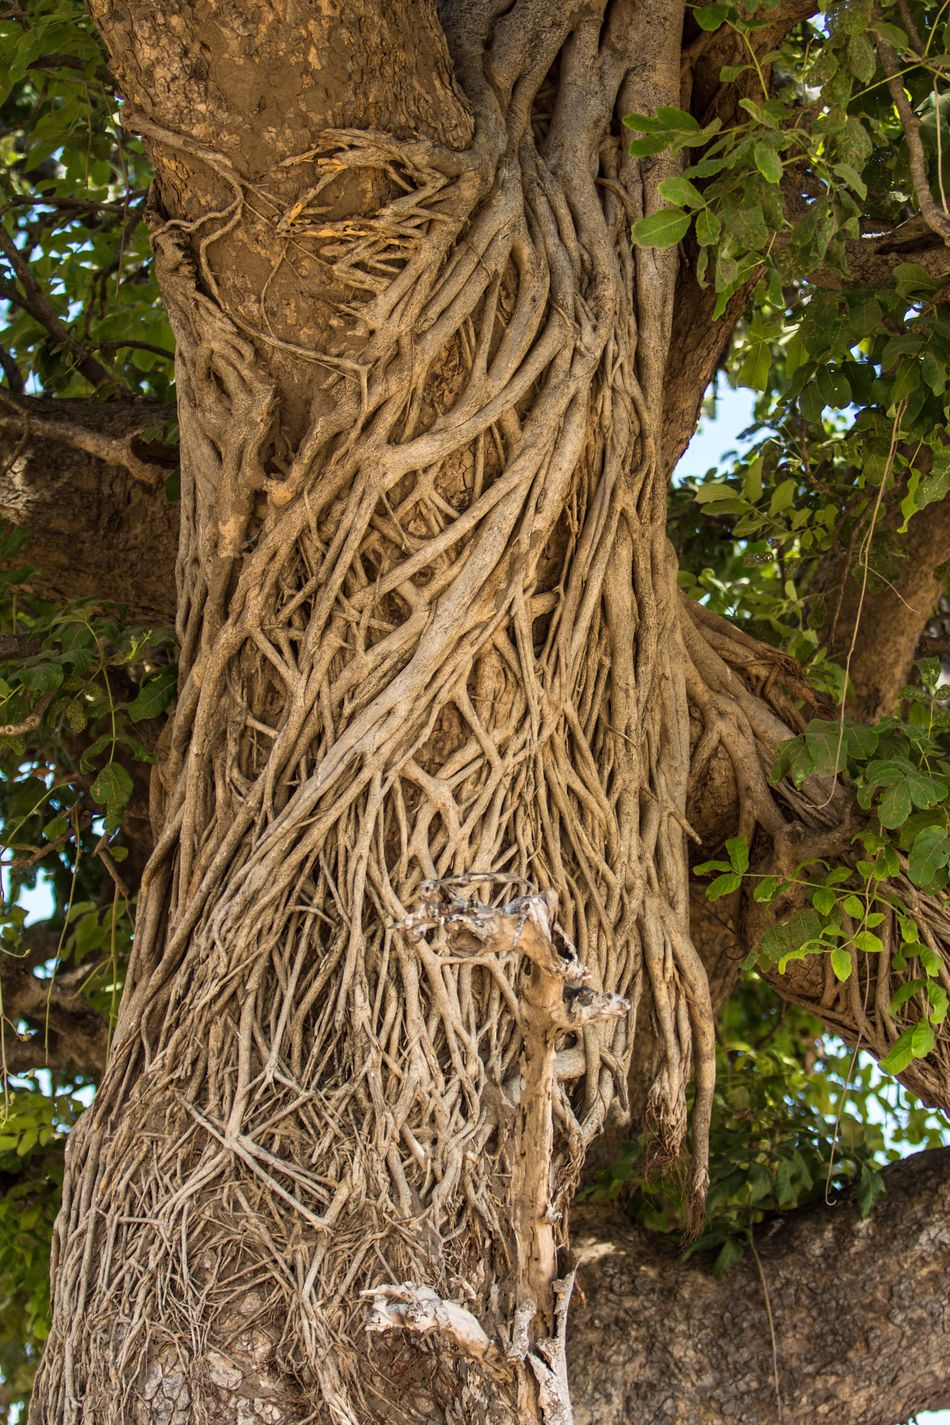 Tree Tree Trunk Nature Growth Outdoors Beauty In Nature Root No People Day Close-up Strangler Fig